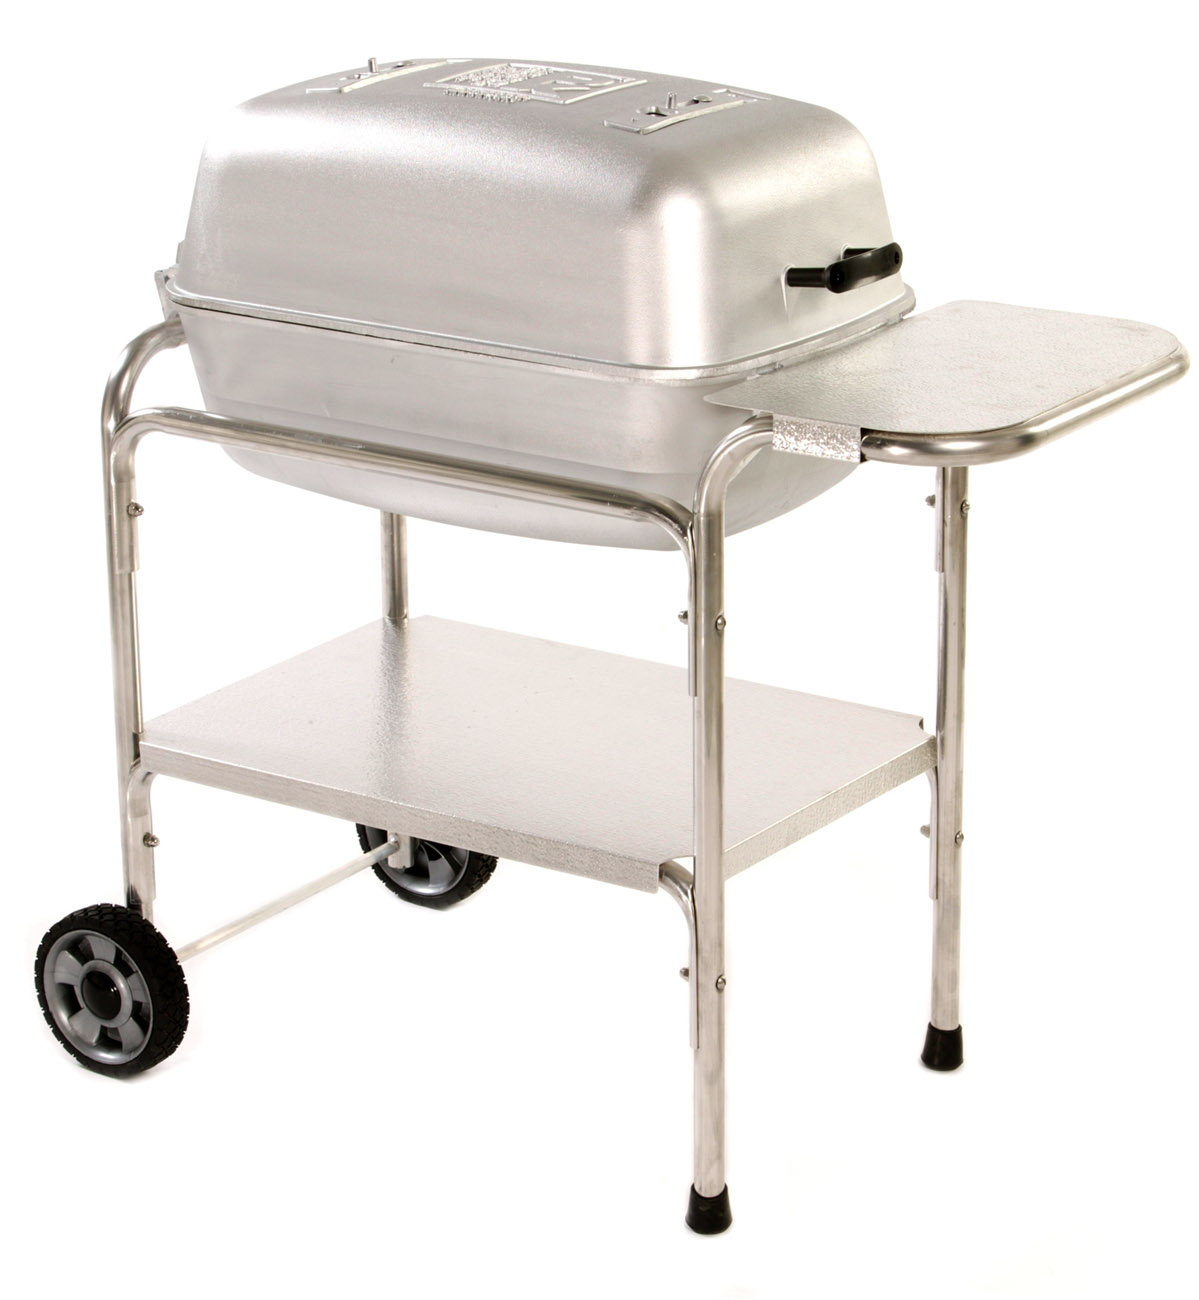 Best Charcoal Grills | Top Picks and Reviews at ConsumerSearch